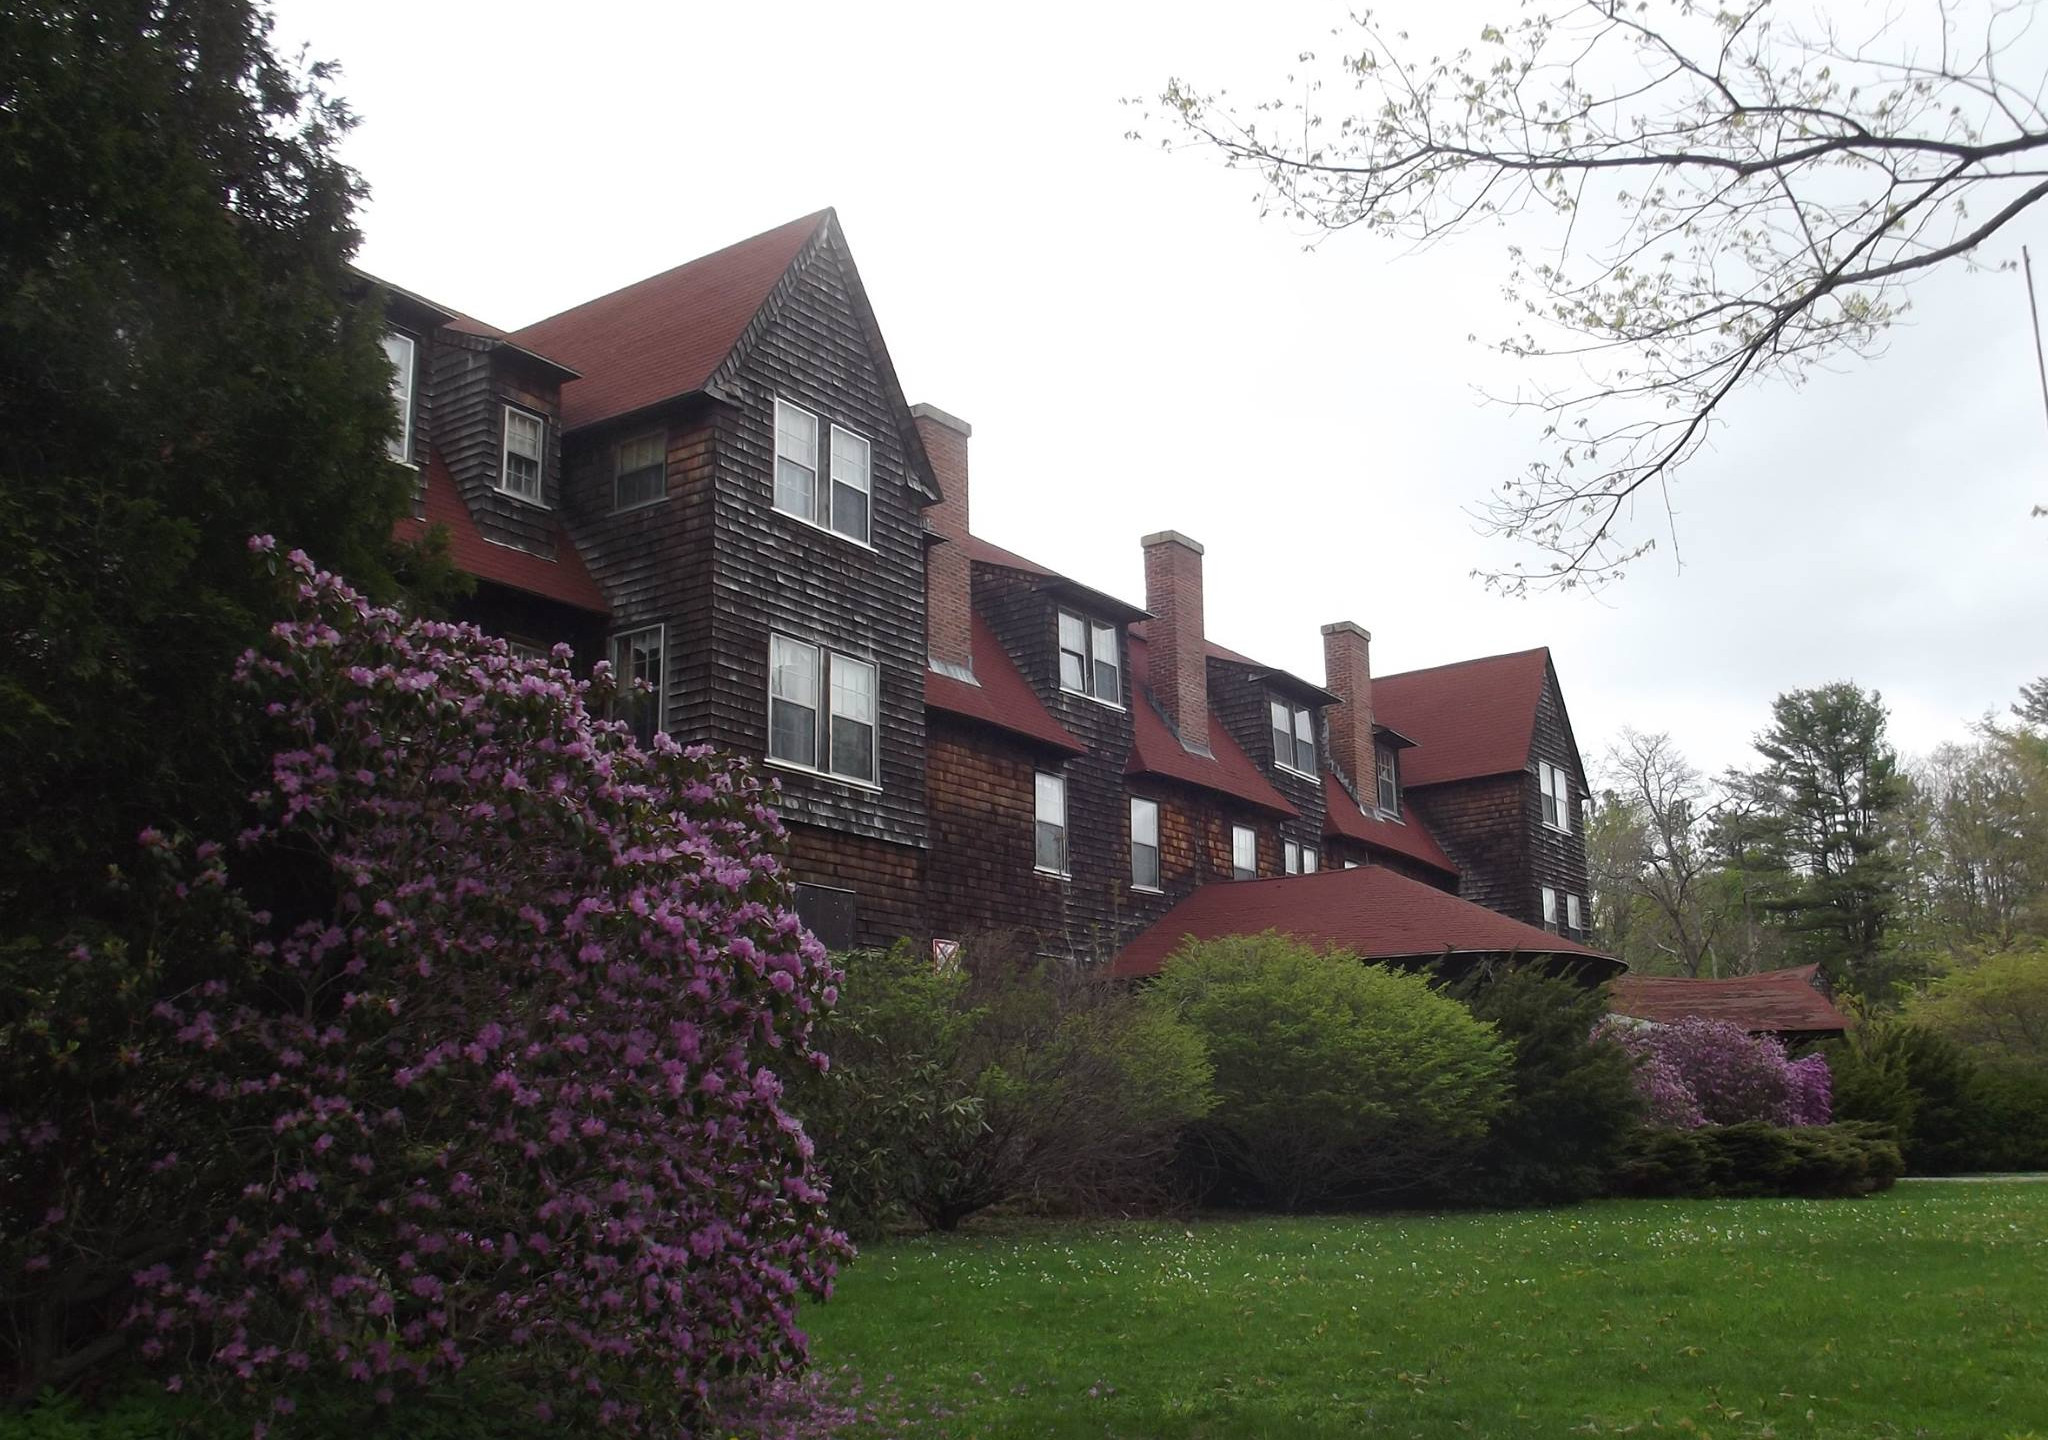 Nichewaug Inn side view photo in Spring Michele Cahill